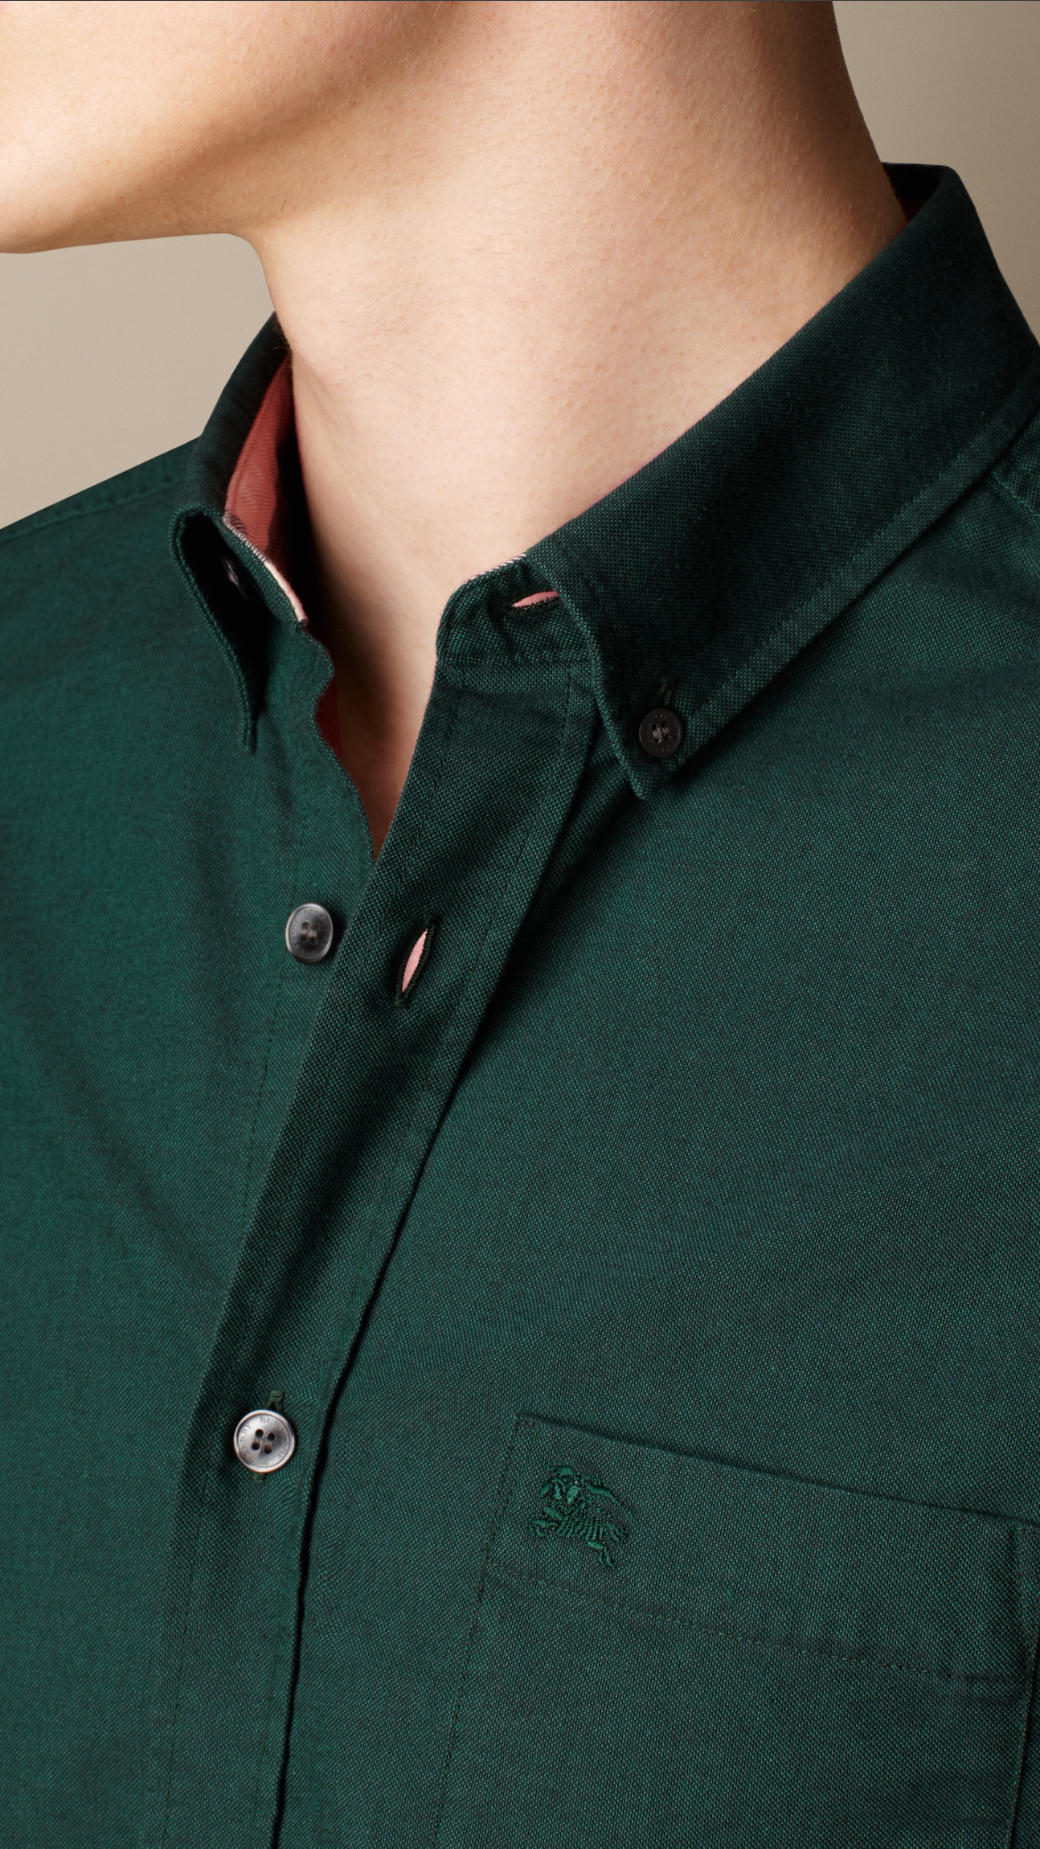 Green Dress Shirt Men